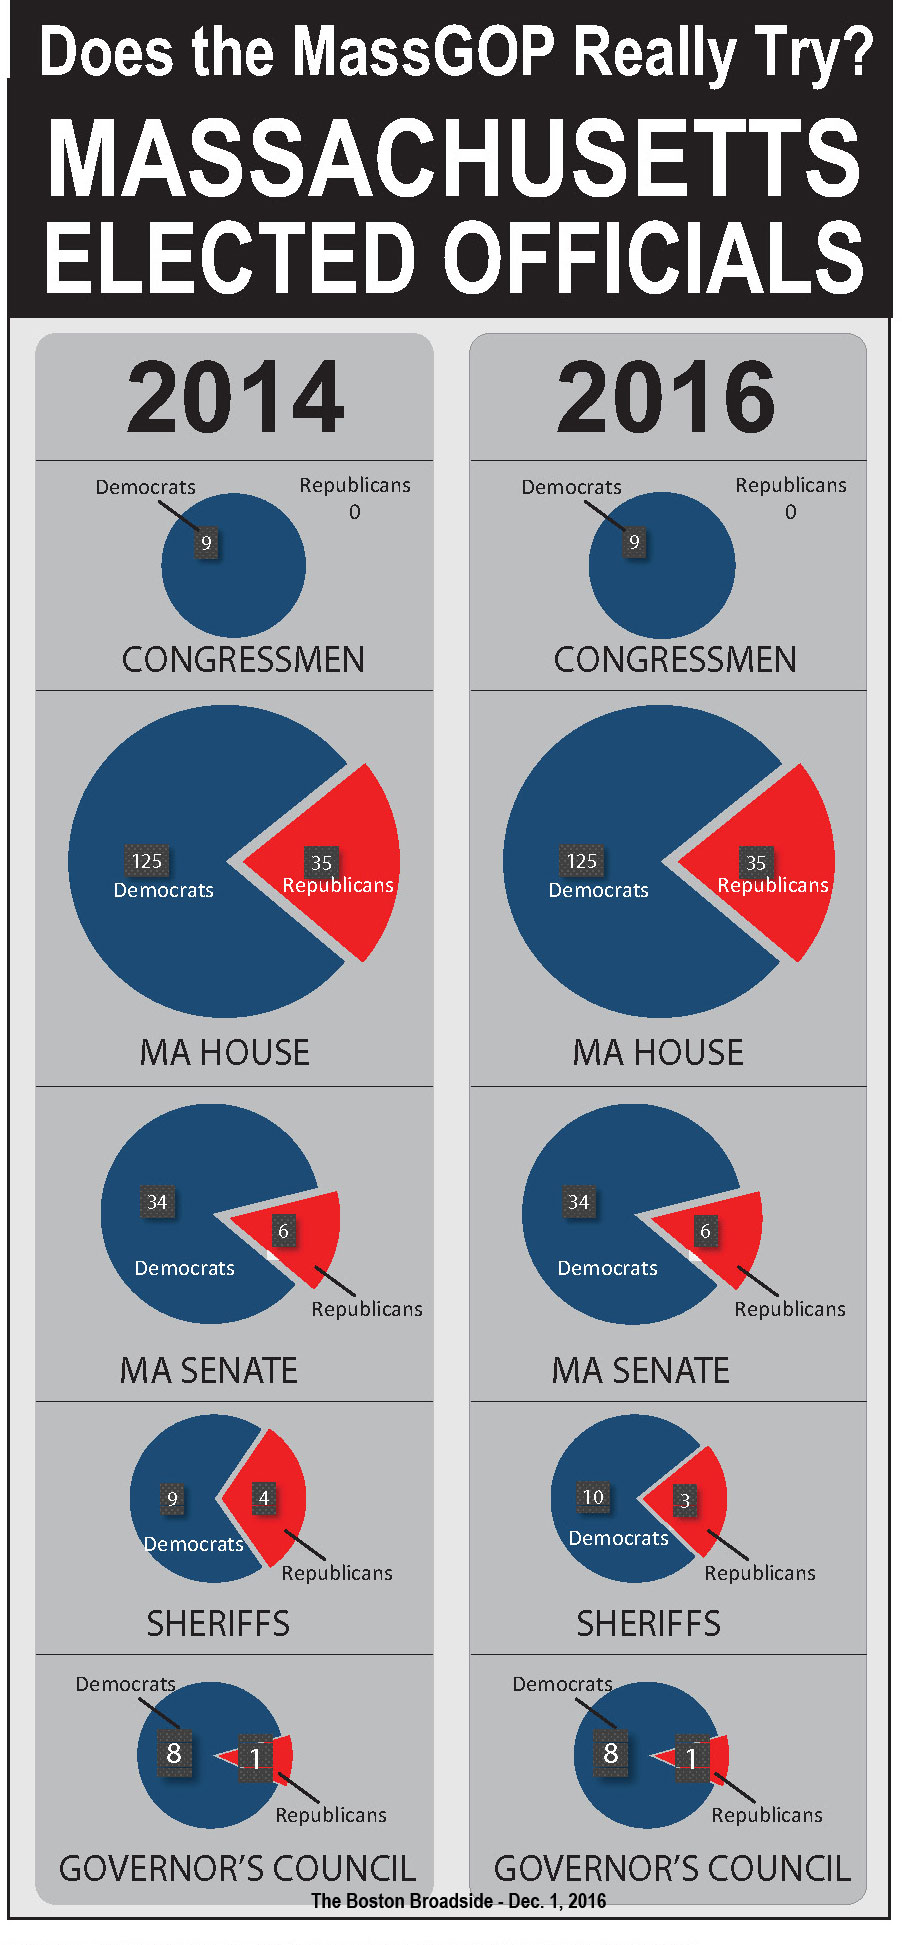 mass_elected_officials_2014-2016